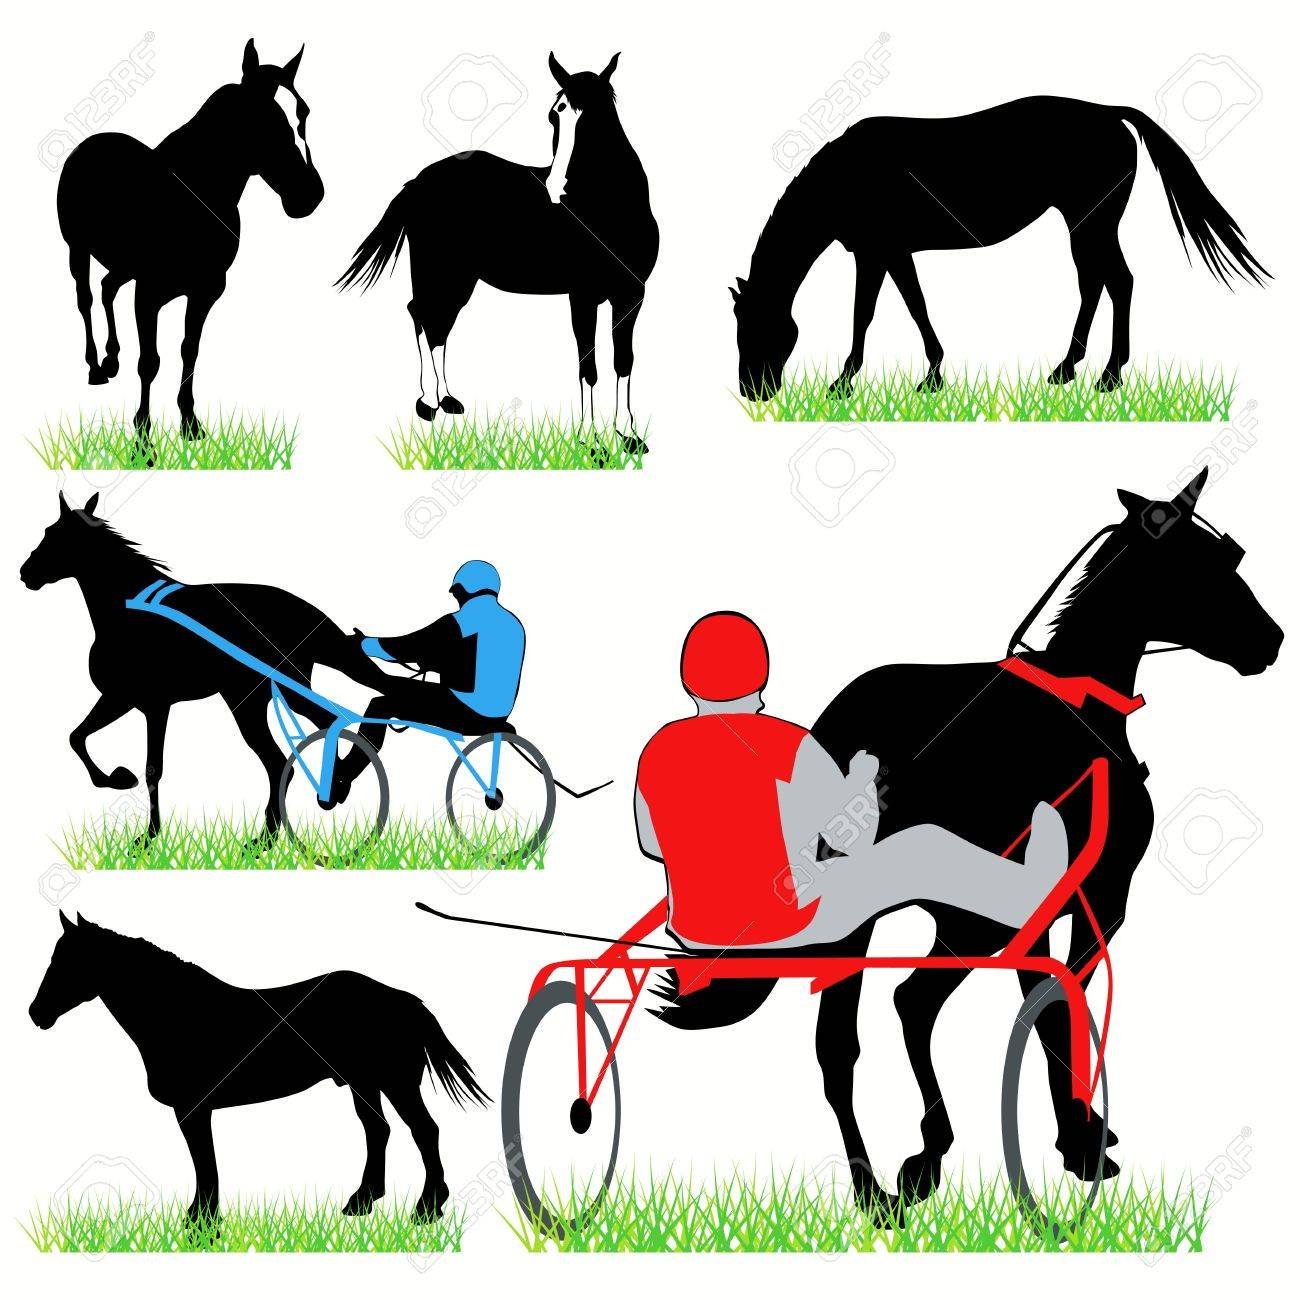 Jockeys and horses set Stock Vector - 9819999